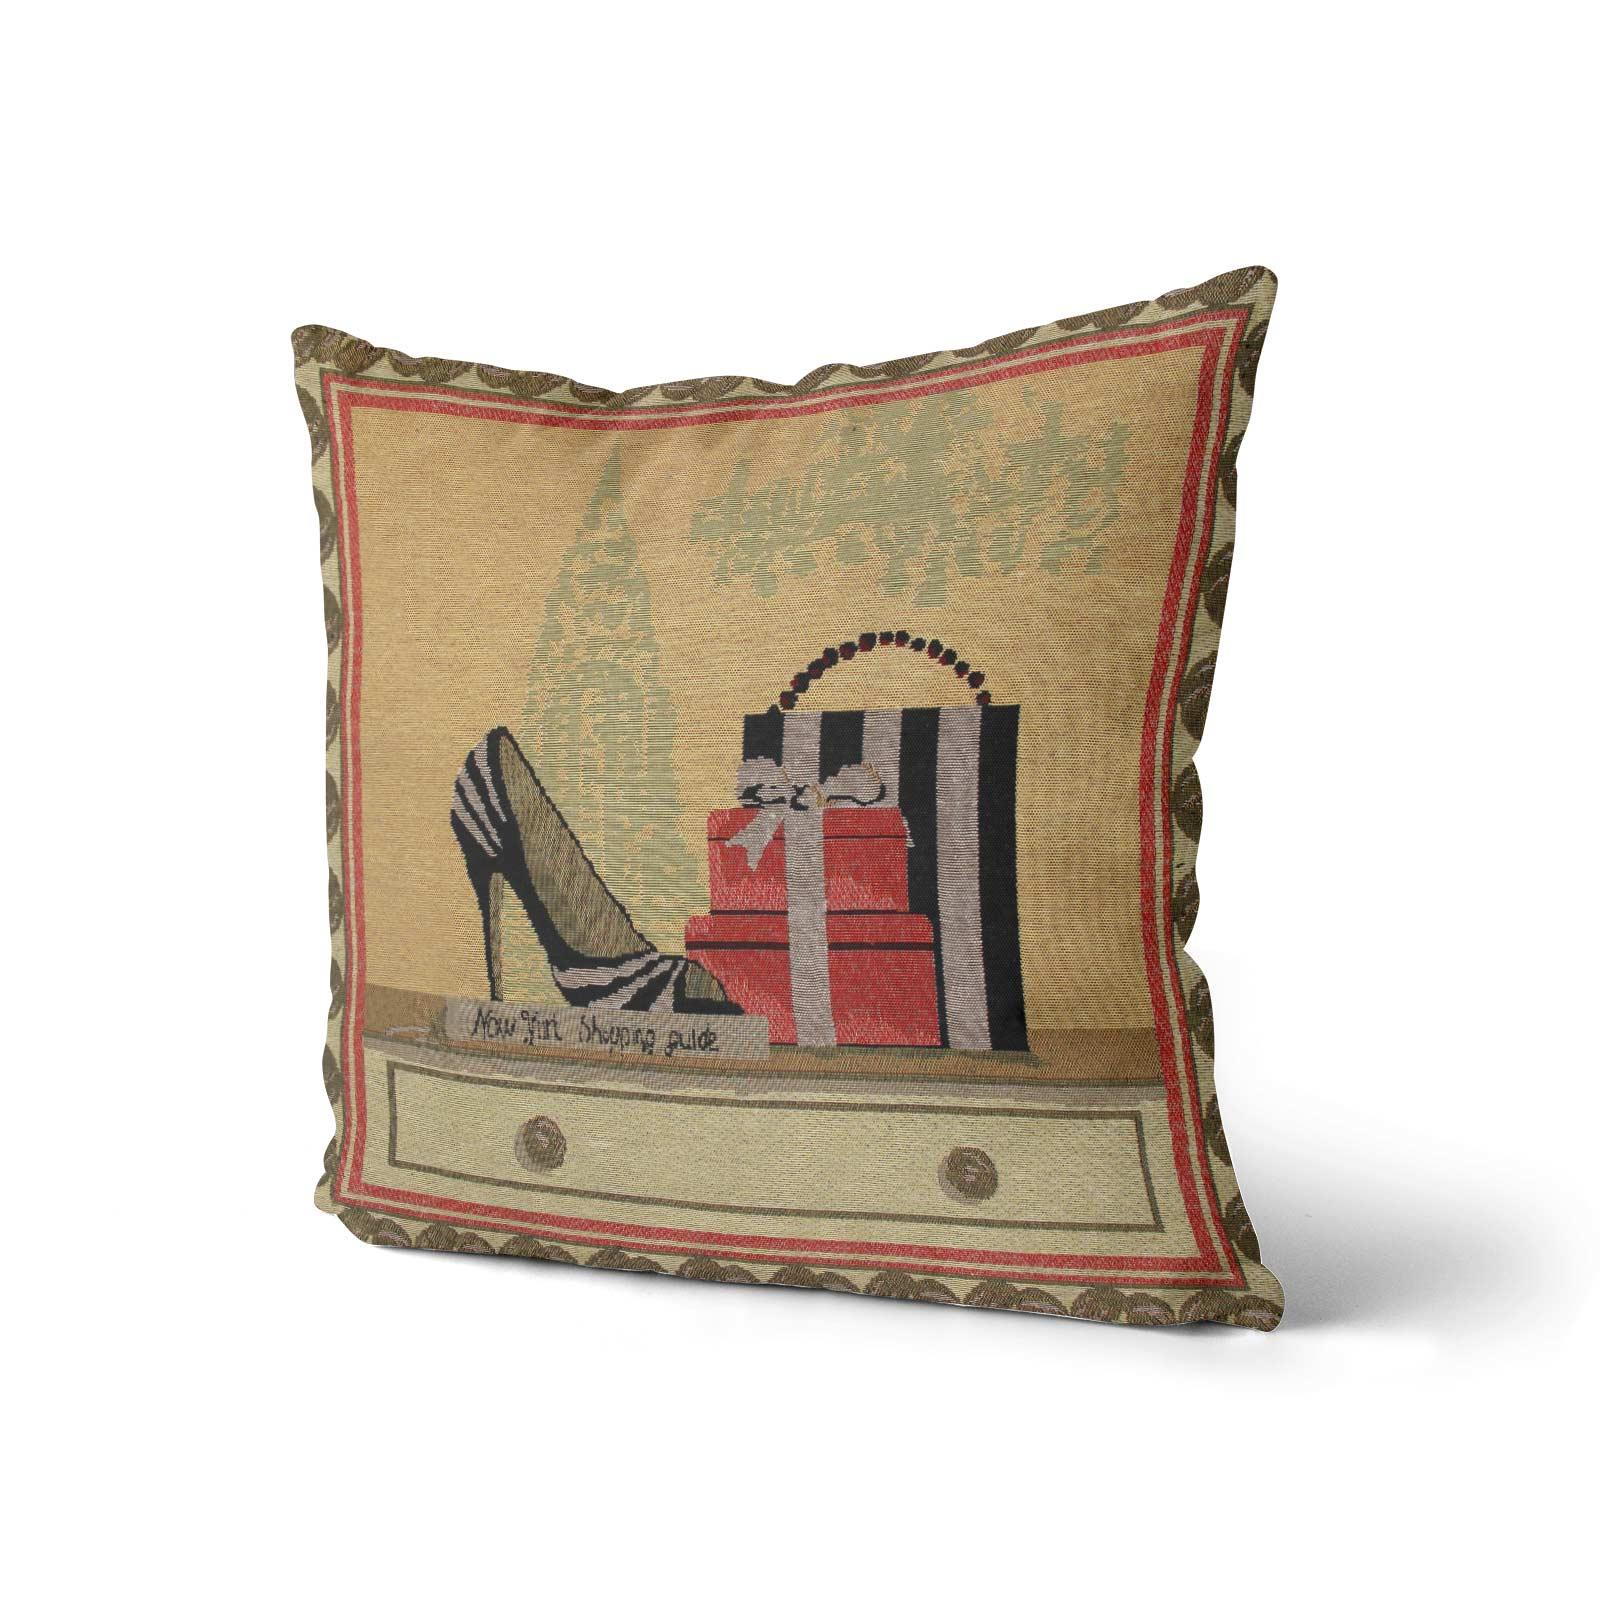 Tapestry-Cushion-Covers-Vintage-Pillow-Cover-Collection-18-034-45cm-Filled-Cushions thumbnail 145